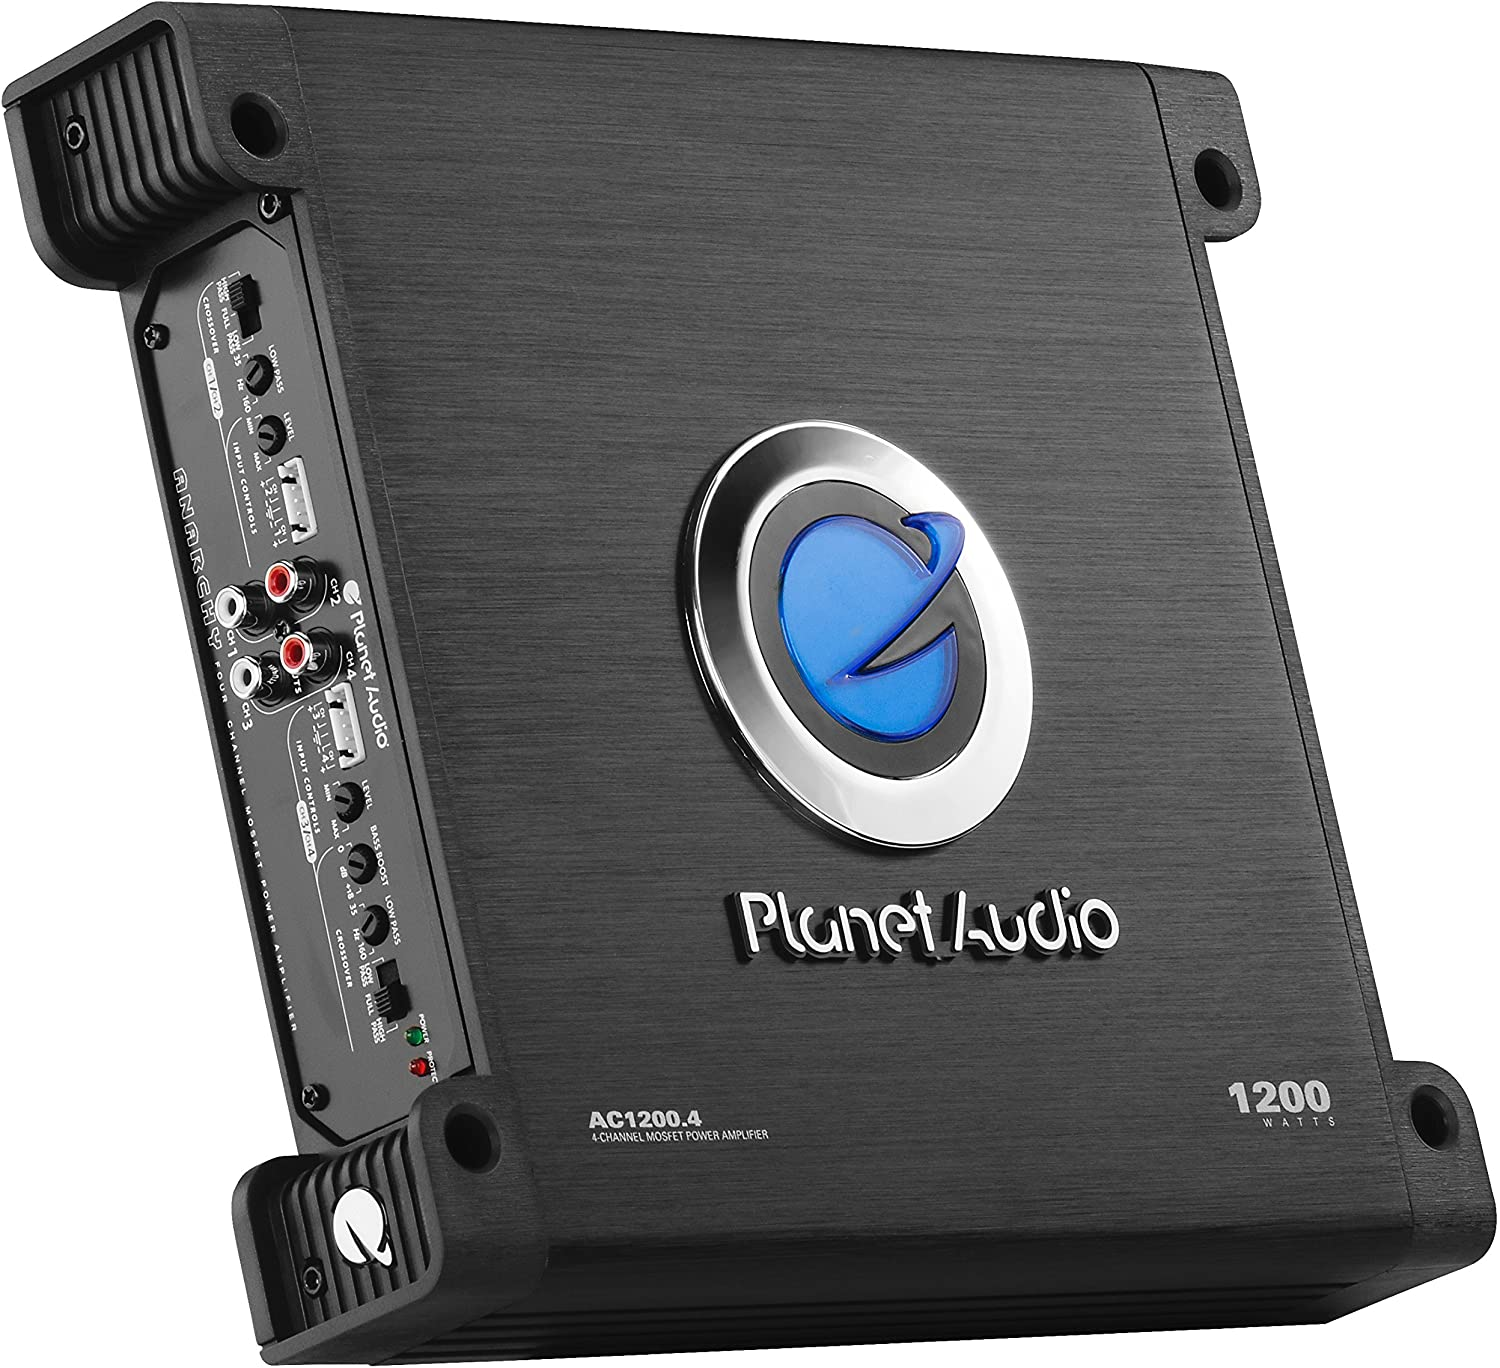 Planet Audio AC1200 4.4 Powerful 4 Channel Amp